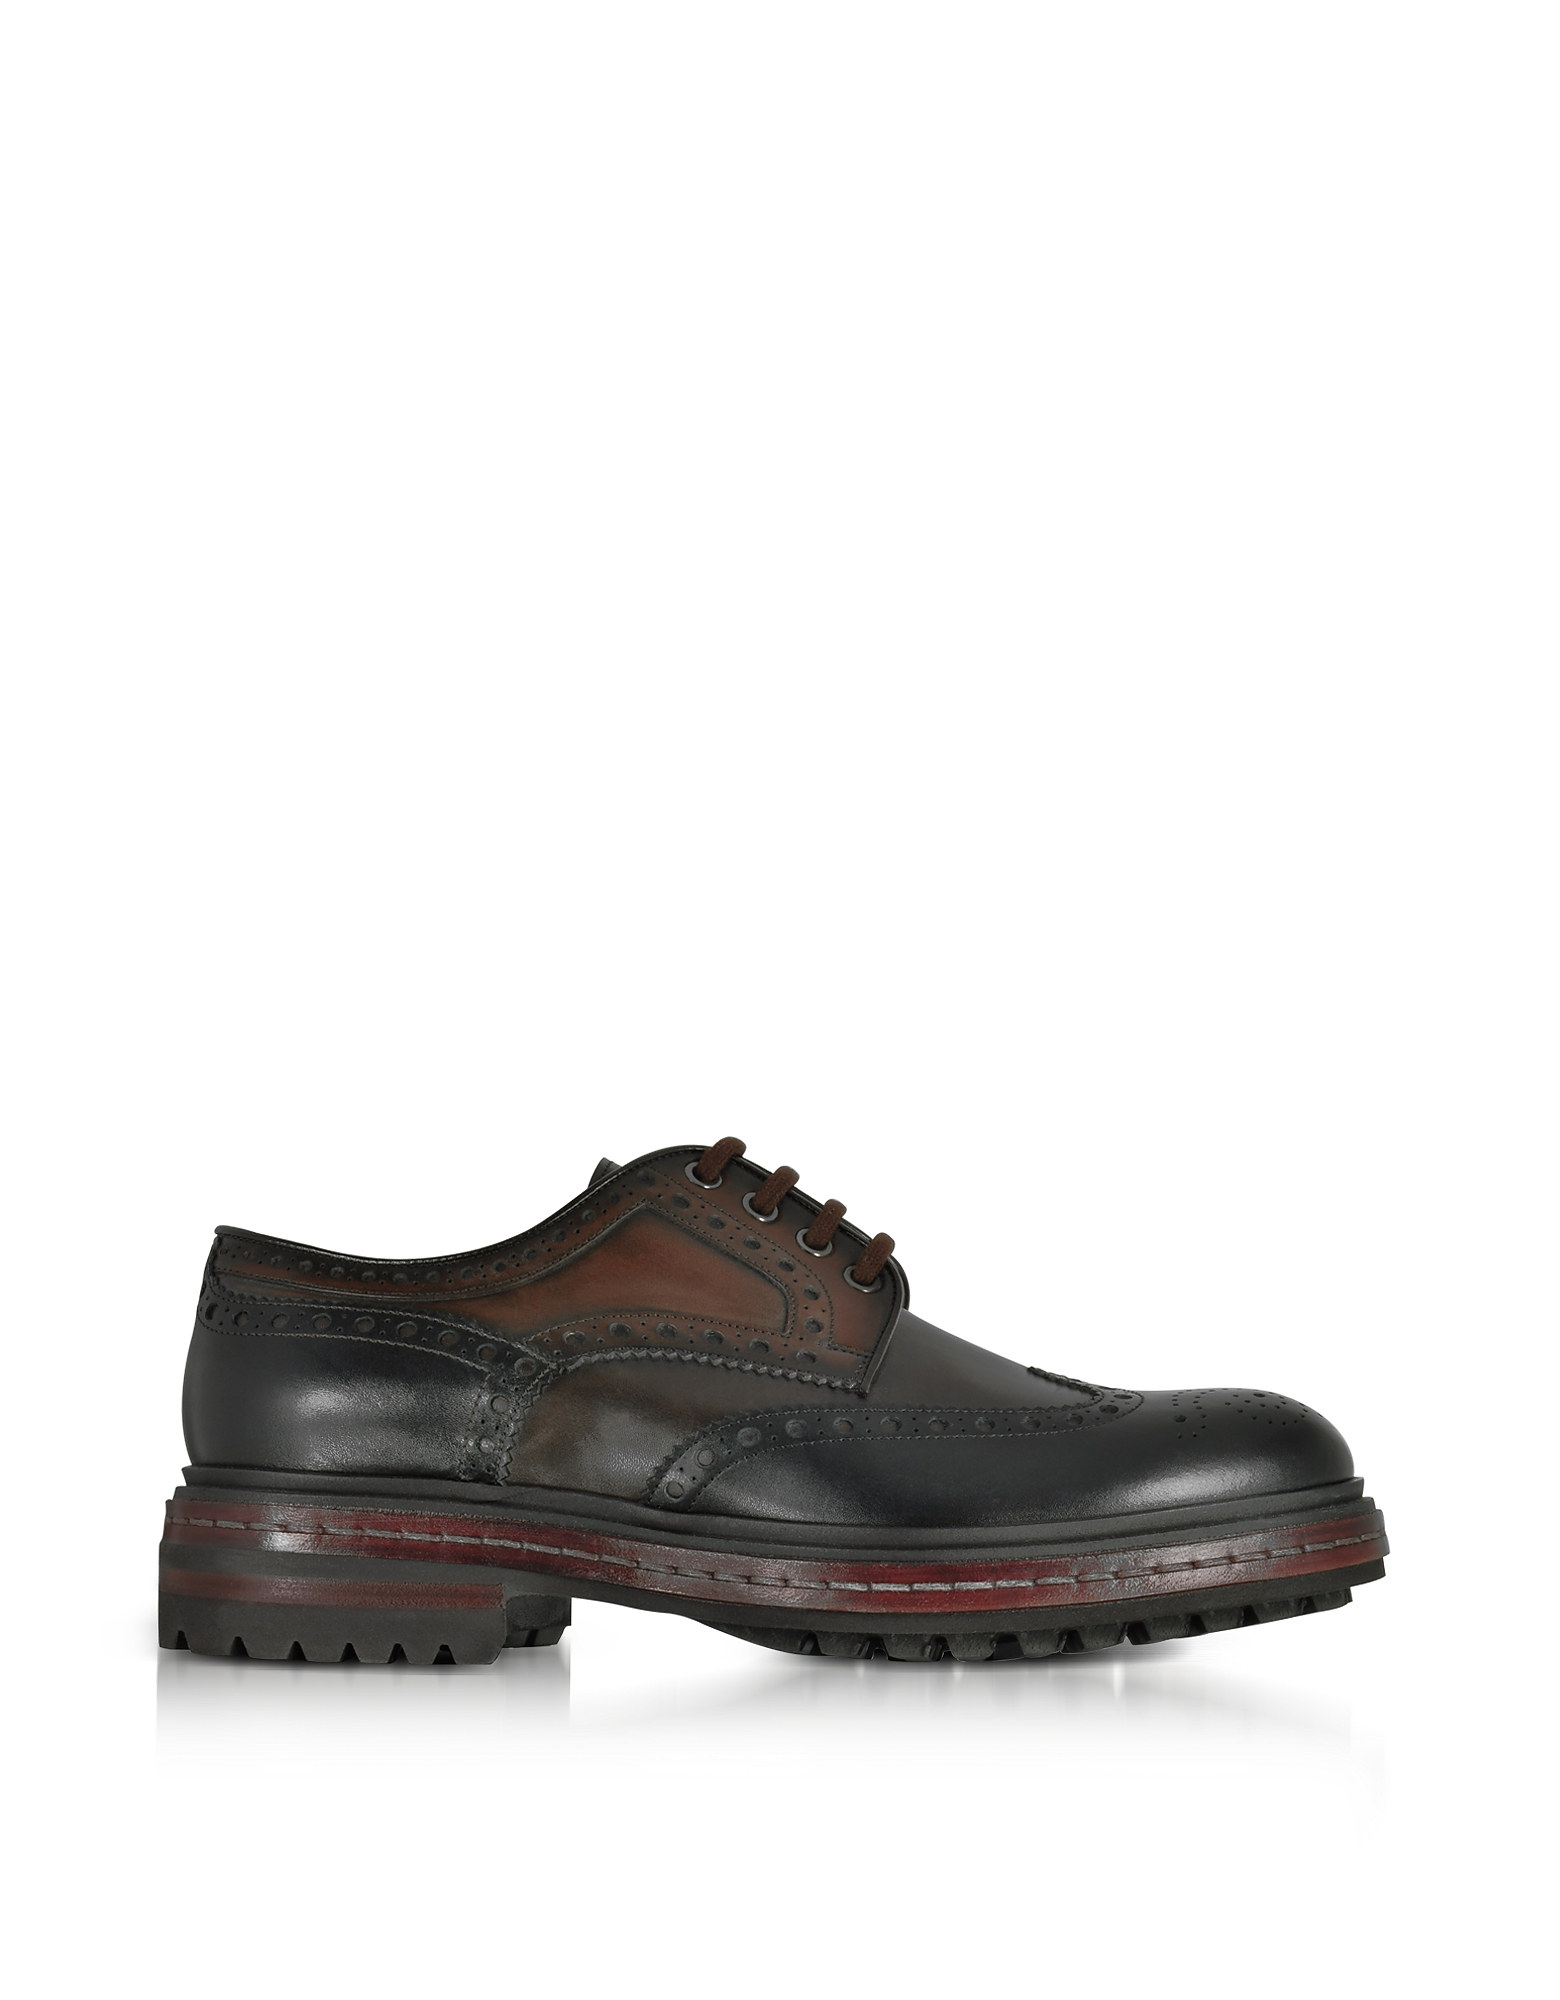 Santoni Dark Brown Wingtip Leather Derby Shoes